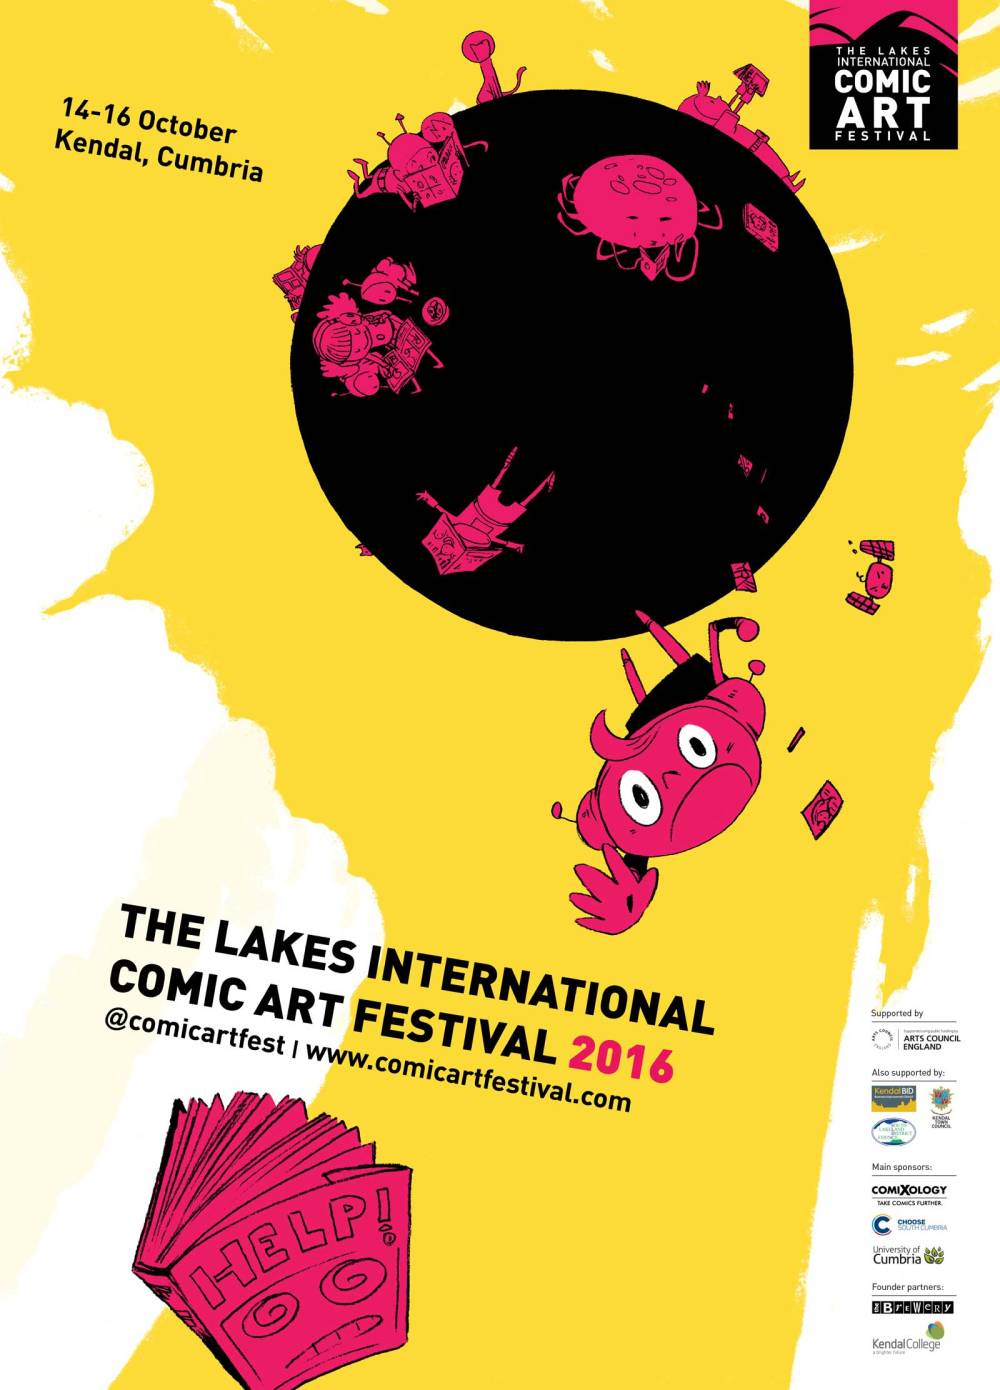 Lakes International Comic Art Festival Poster 2016